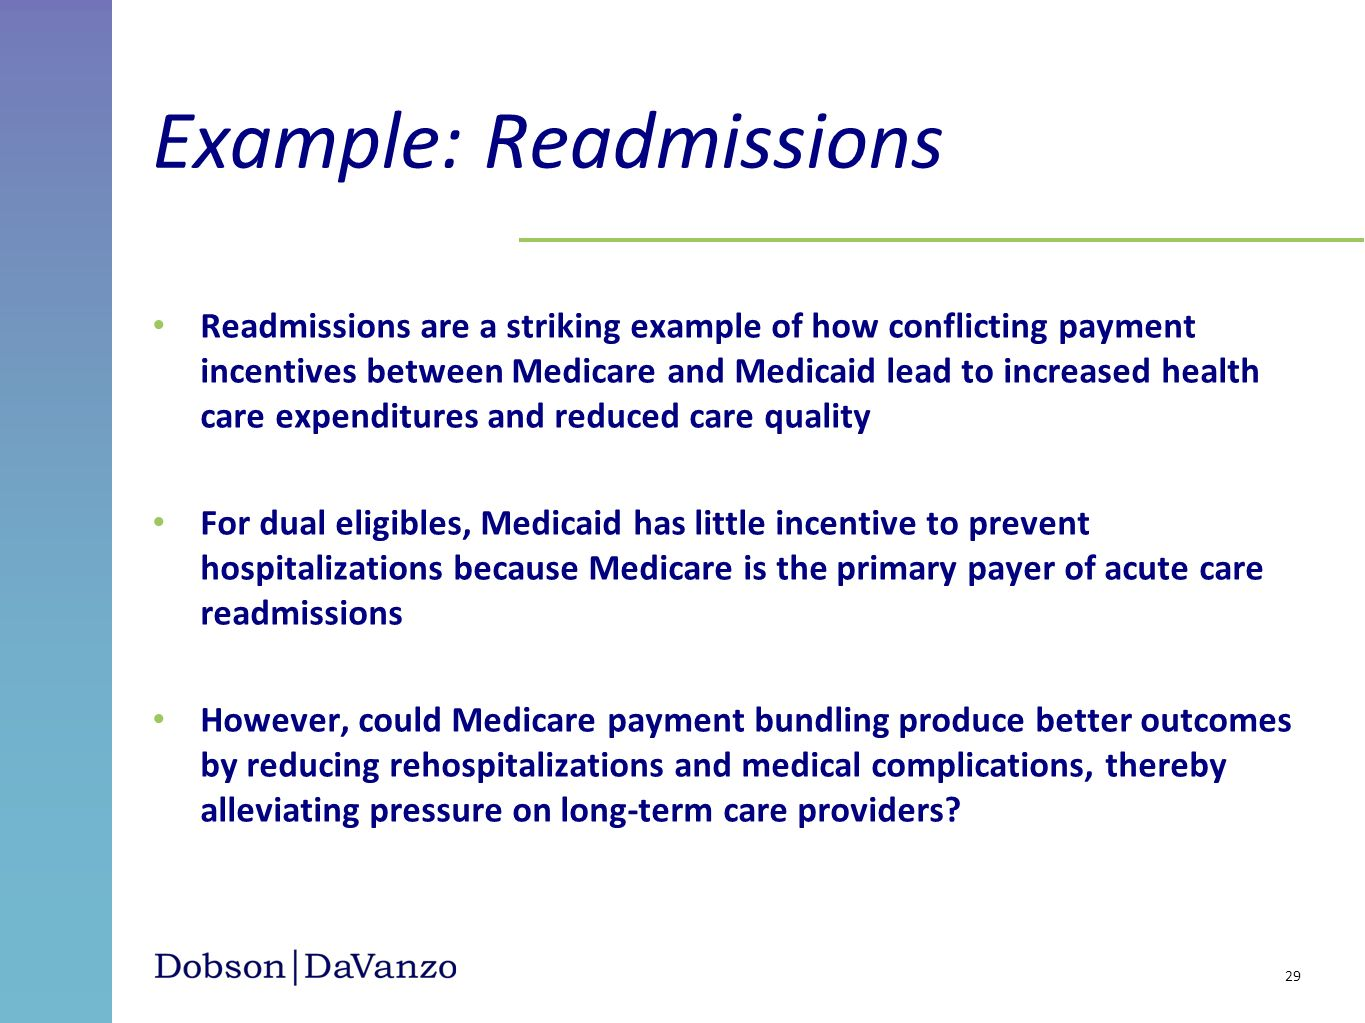 Readmissions are a striking example of how conflicting payment incentives between Medicare and Medicaid lead to increased health care expenditures and